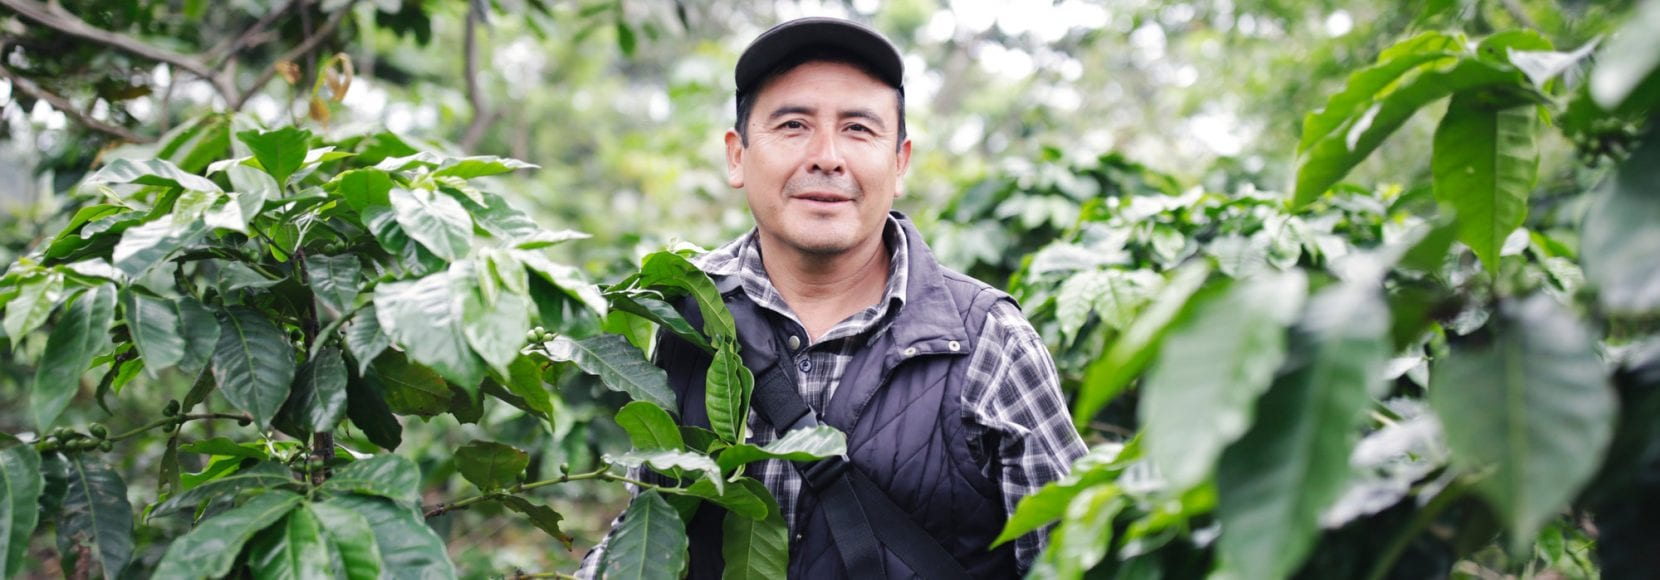 Environmental sustainability extends across technoServe's programs worldwide, including the one selected by this program participant, a coffee farmer in Guatemala